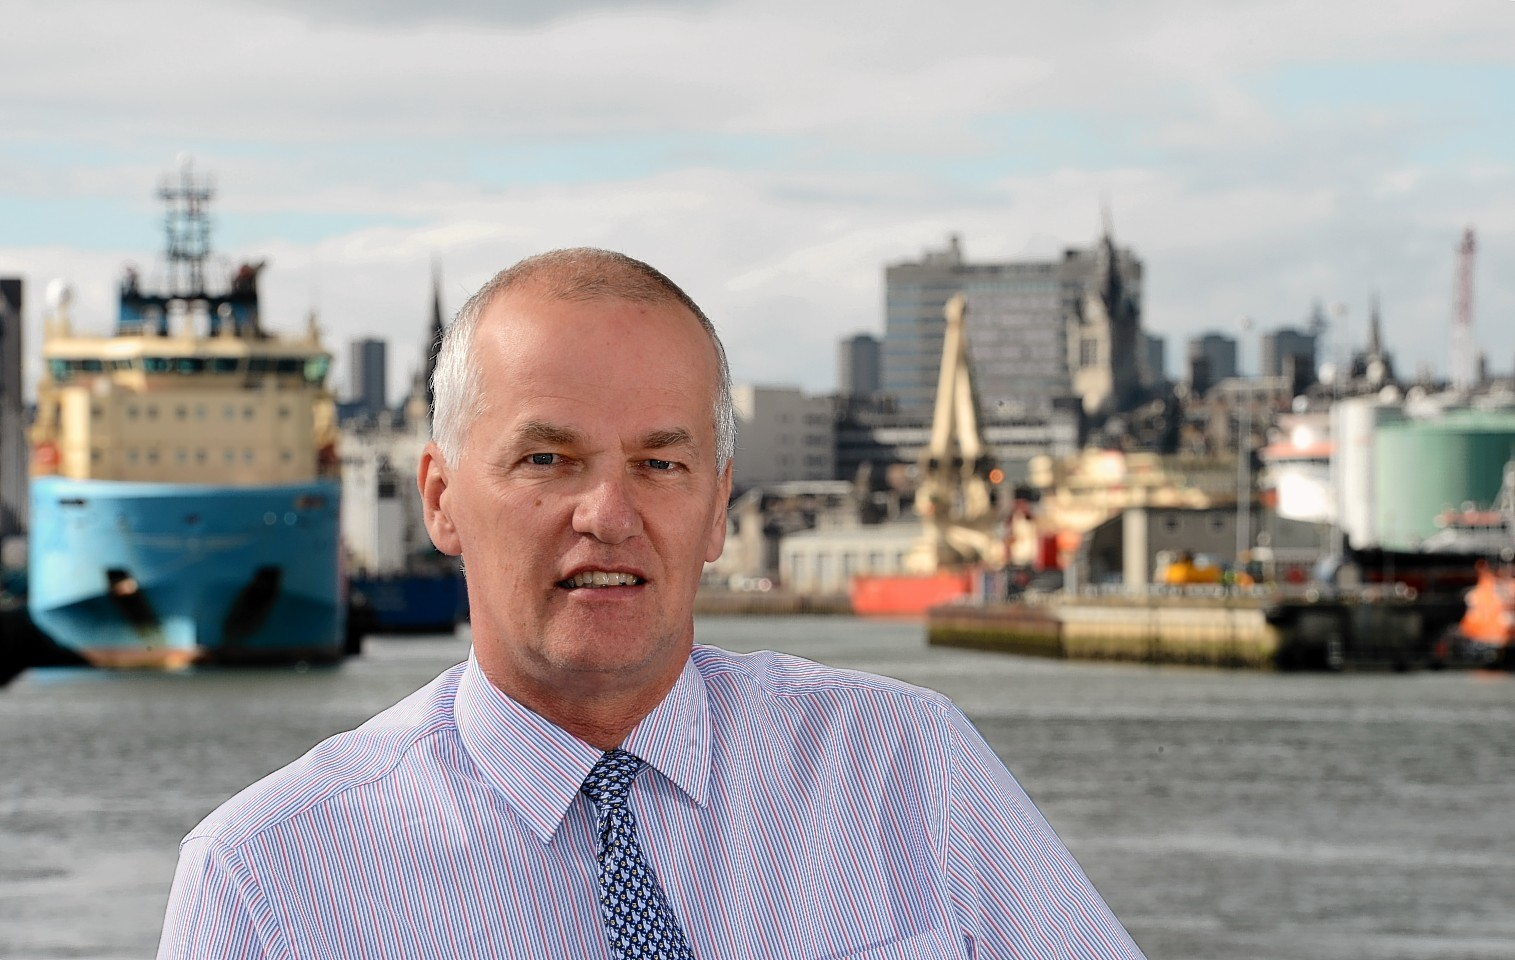 Aberdeen Harbour Board's current CE Colin Parker